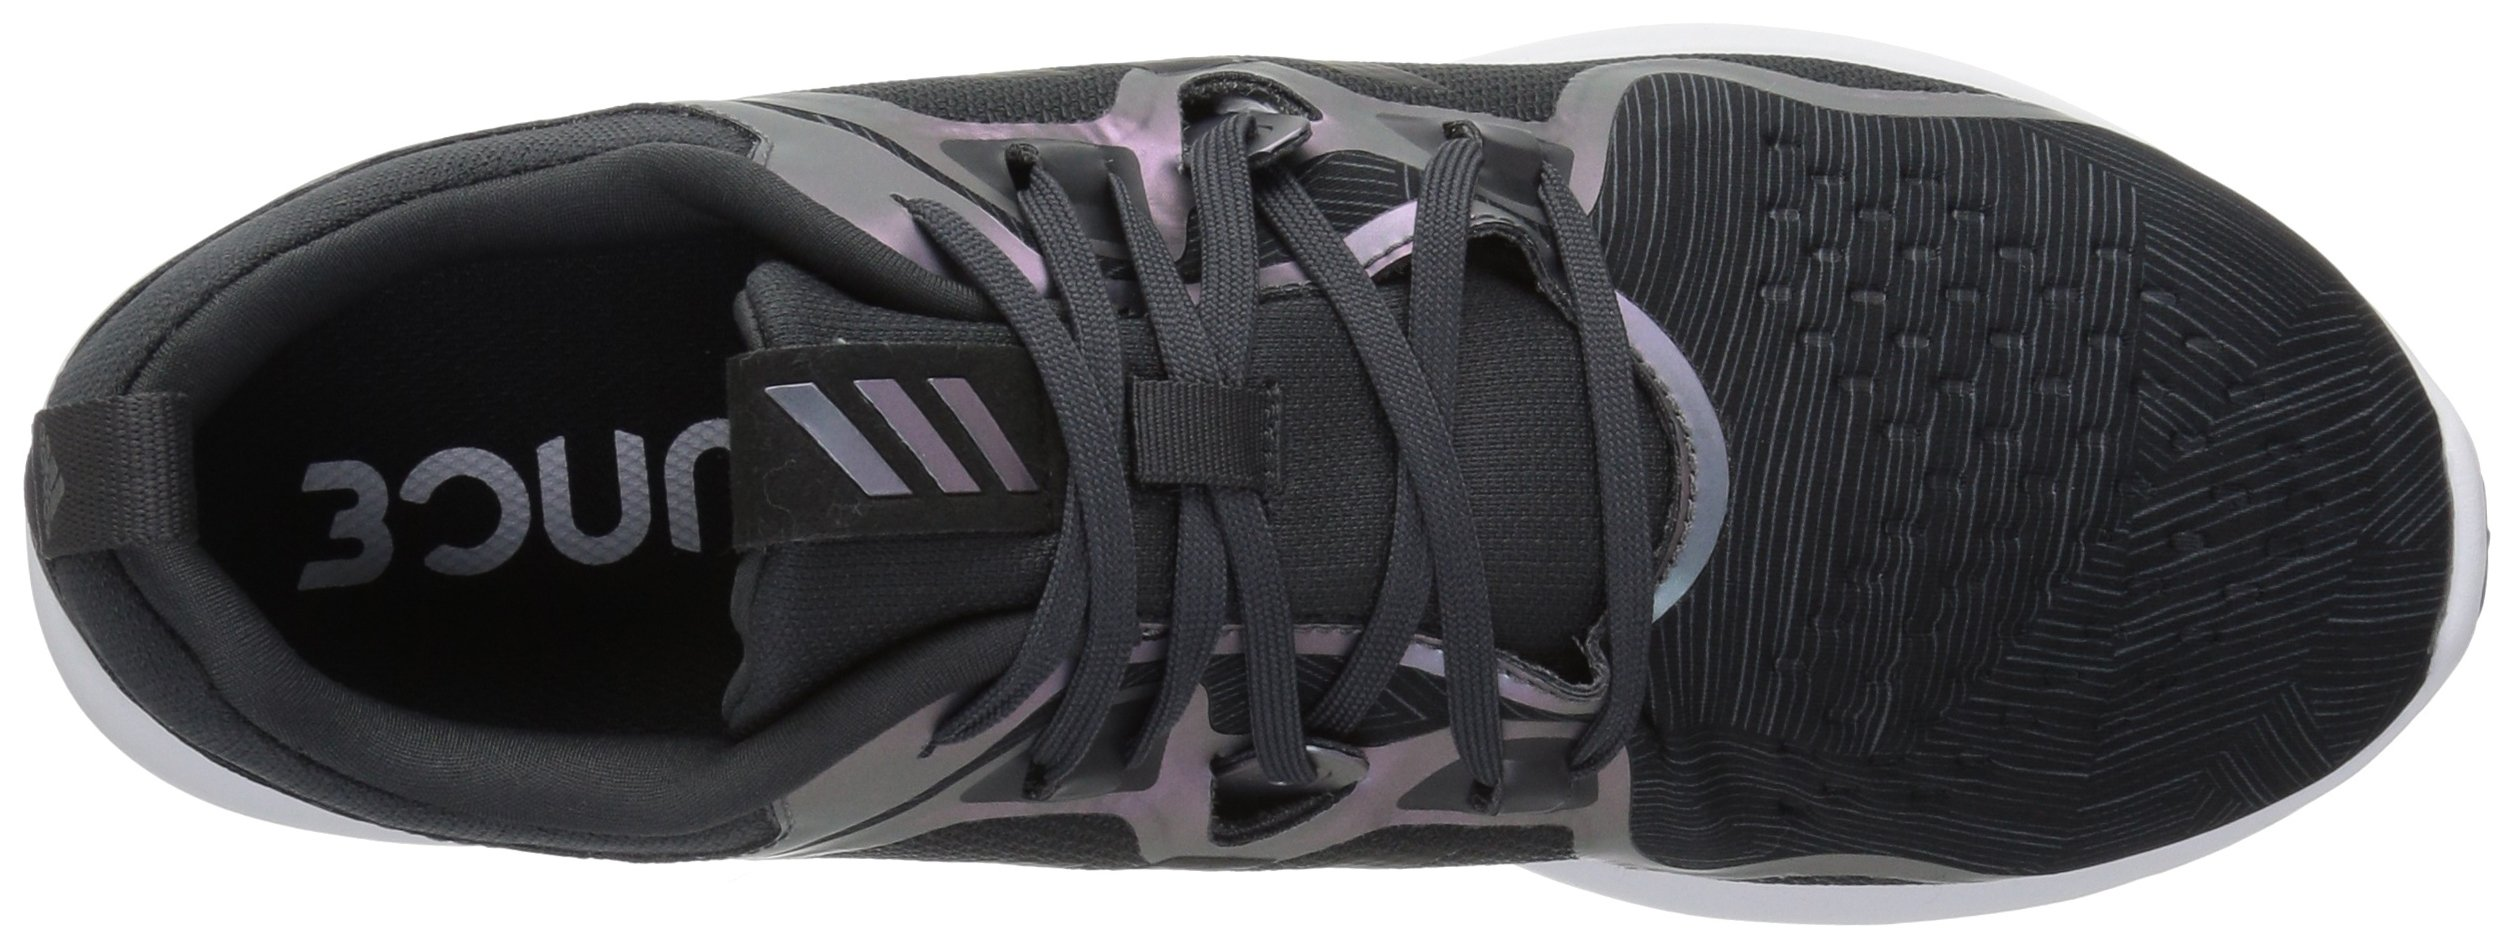 adidas Women's EdgeBounce Running Shoe Carbon/Black/Night Metallic 5.5 M US by adidas (Image #7)